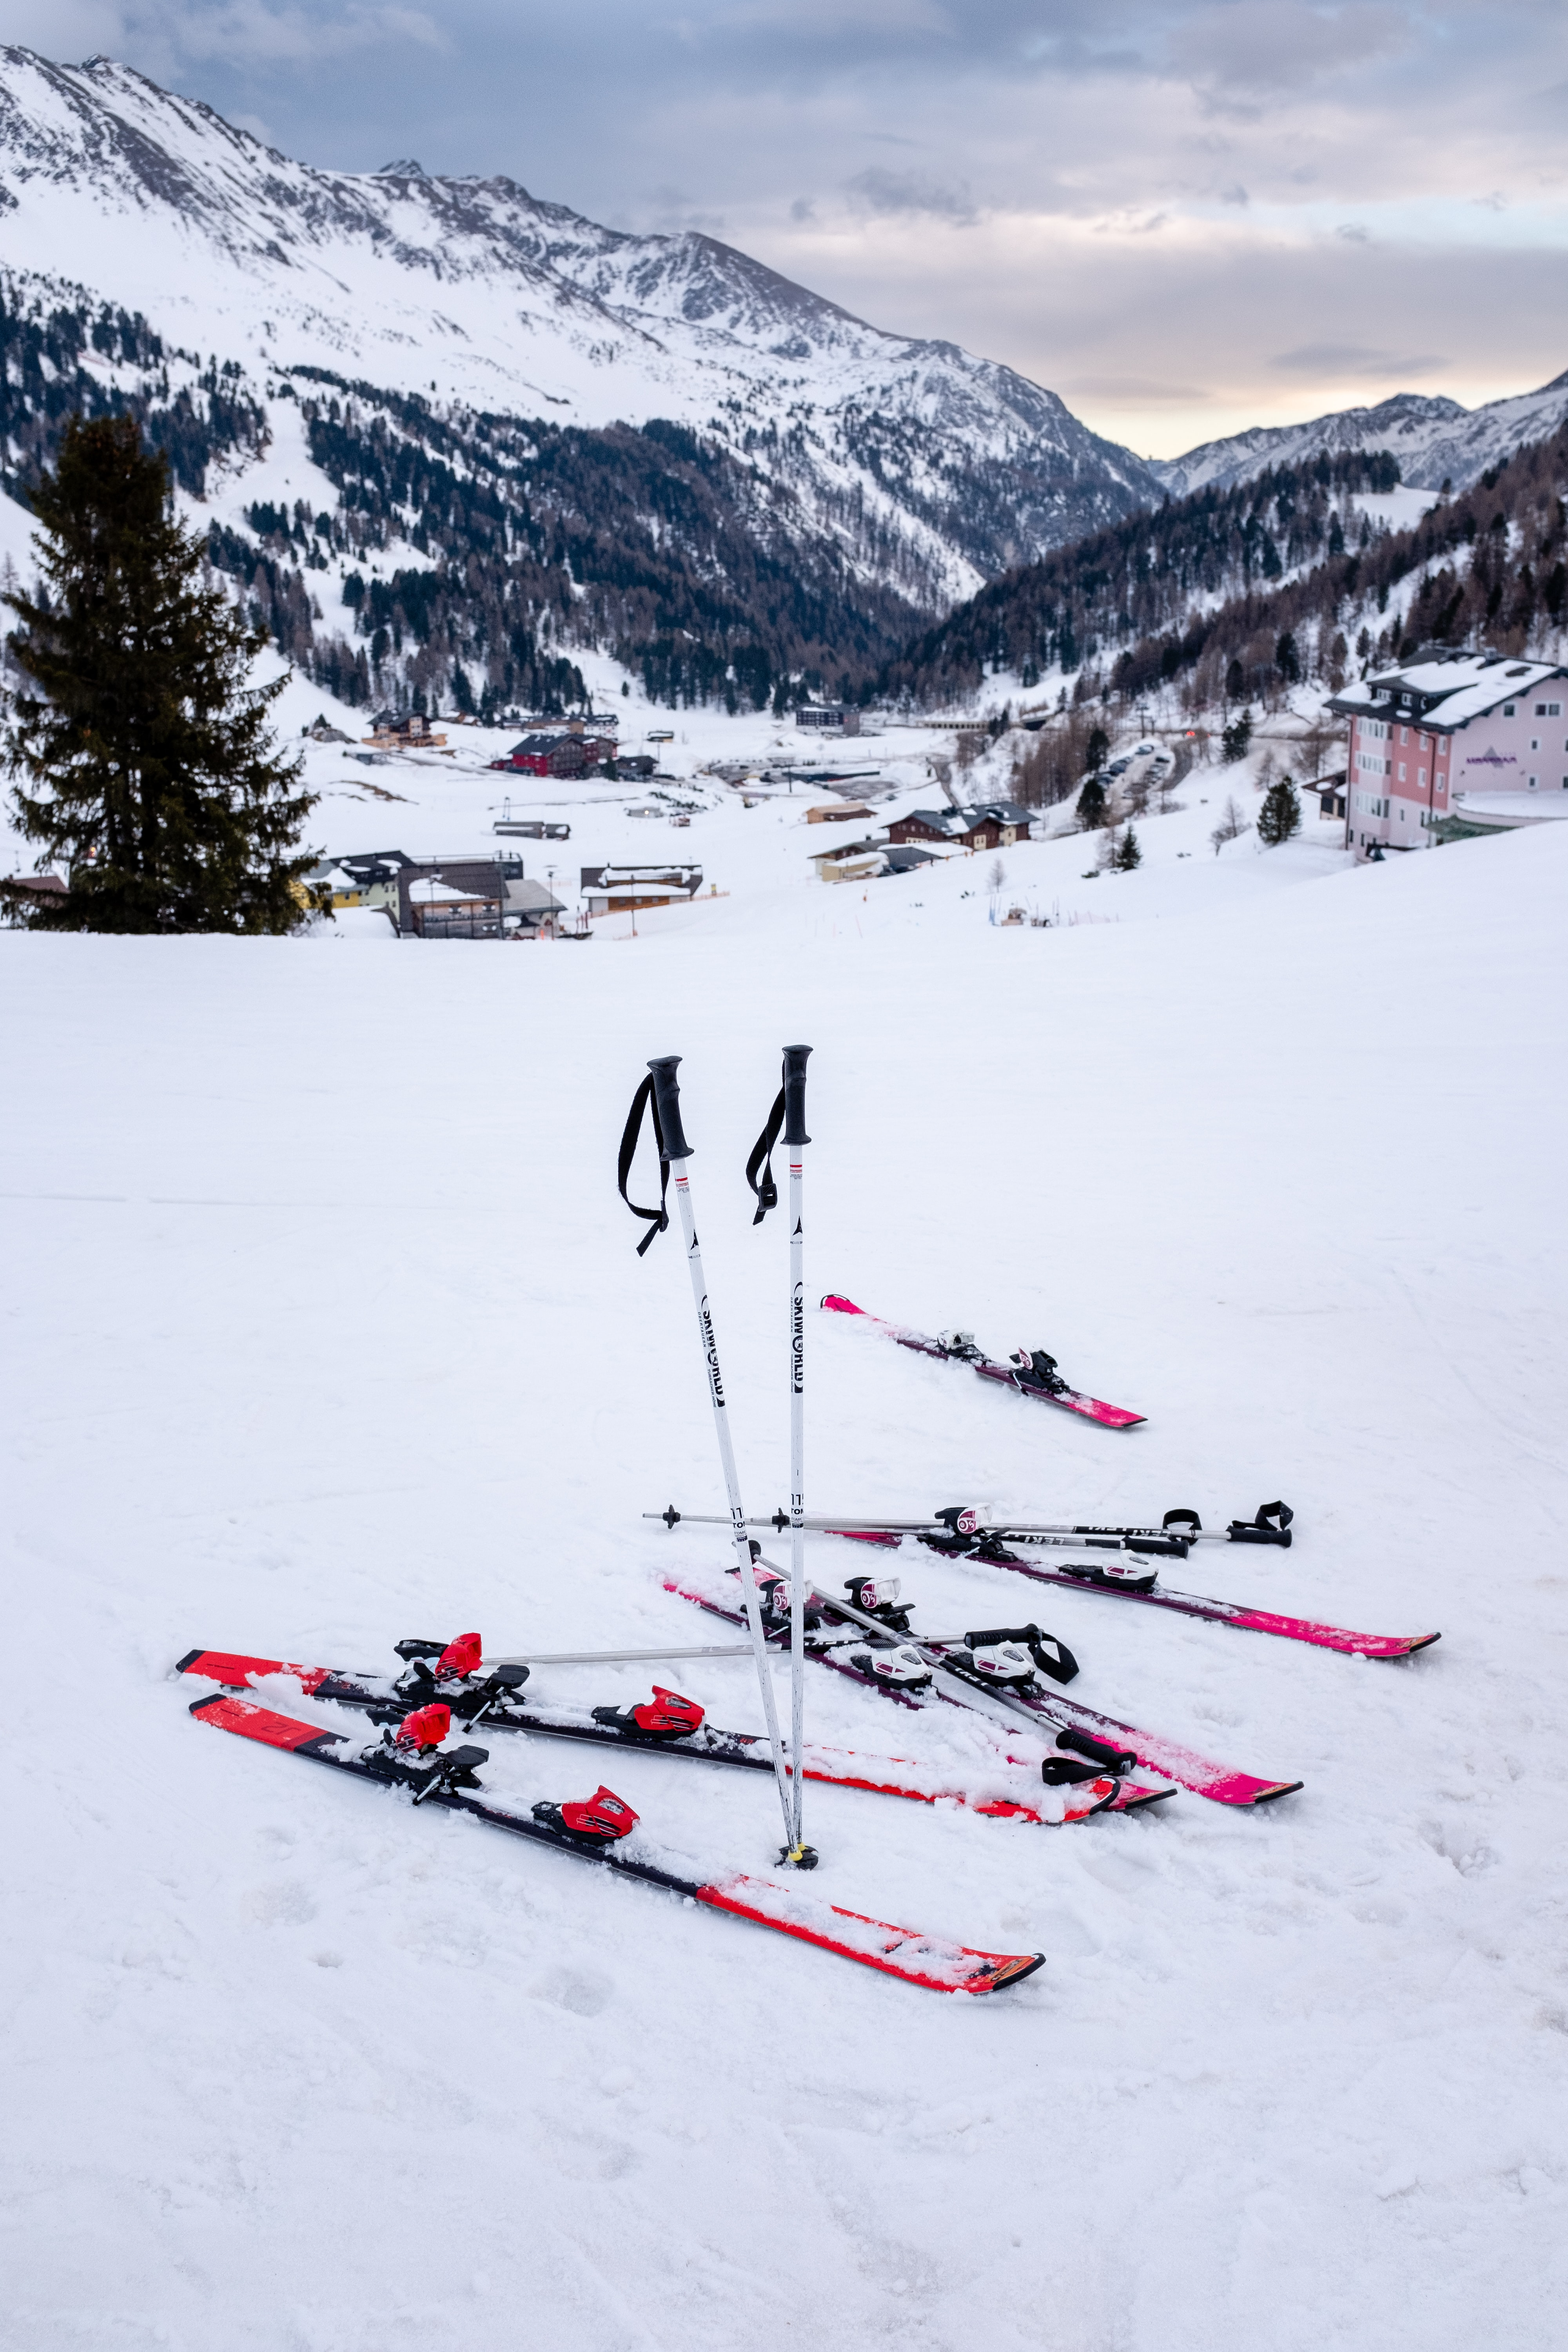 snow skis on snow